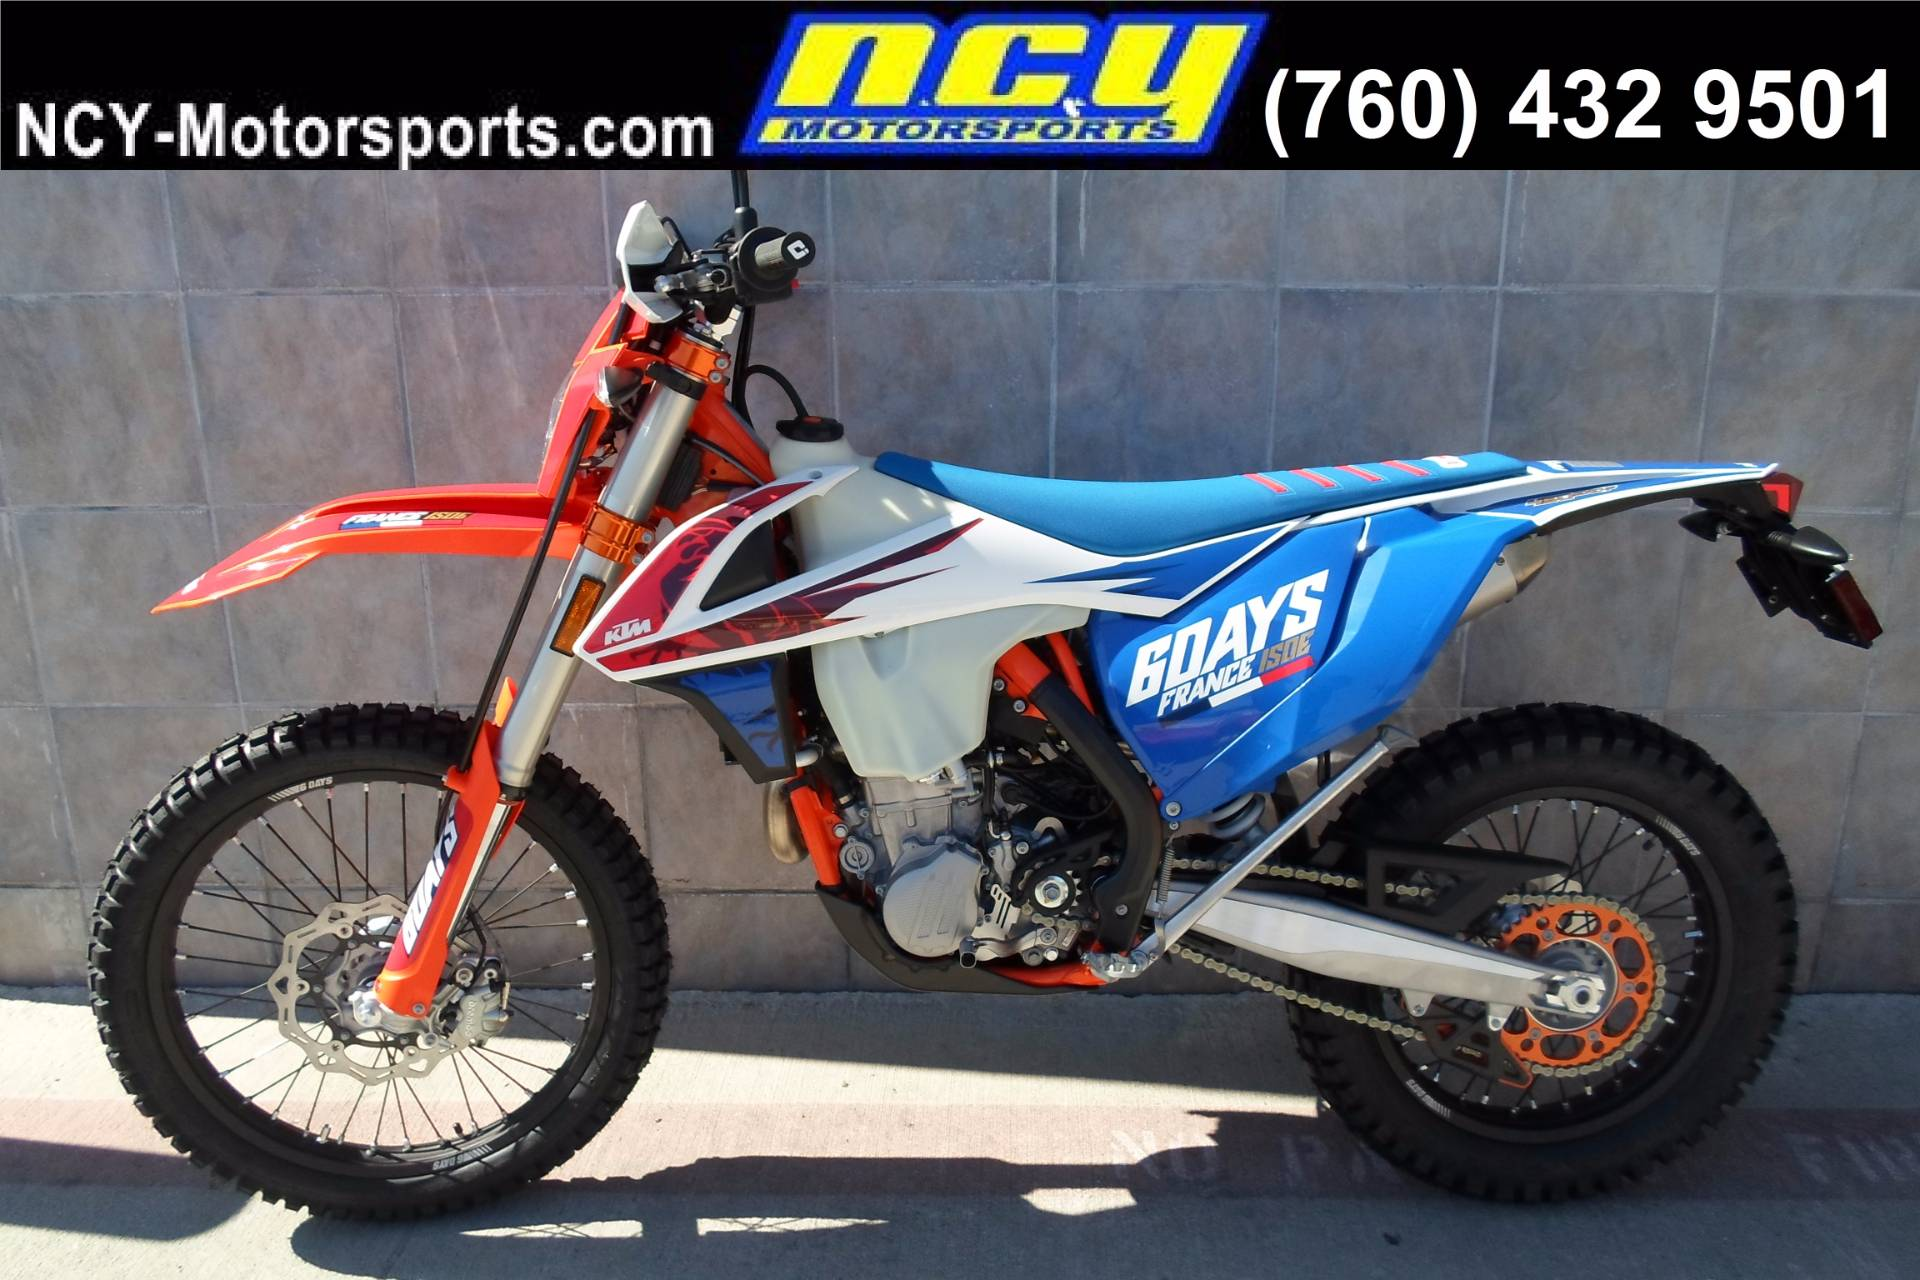 2018 ktm prices.  2018 2018 ktm 450 excf six days in san marcos california inside ktm prices